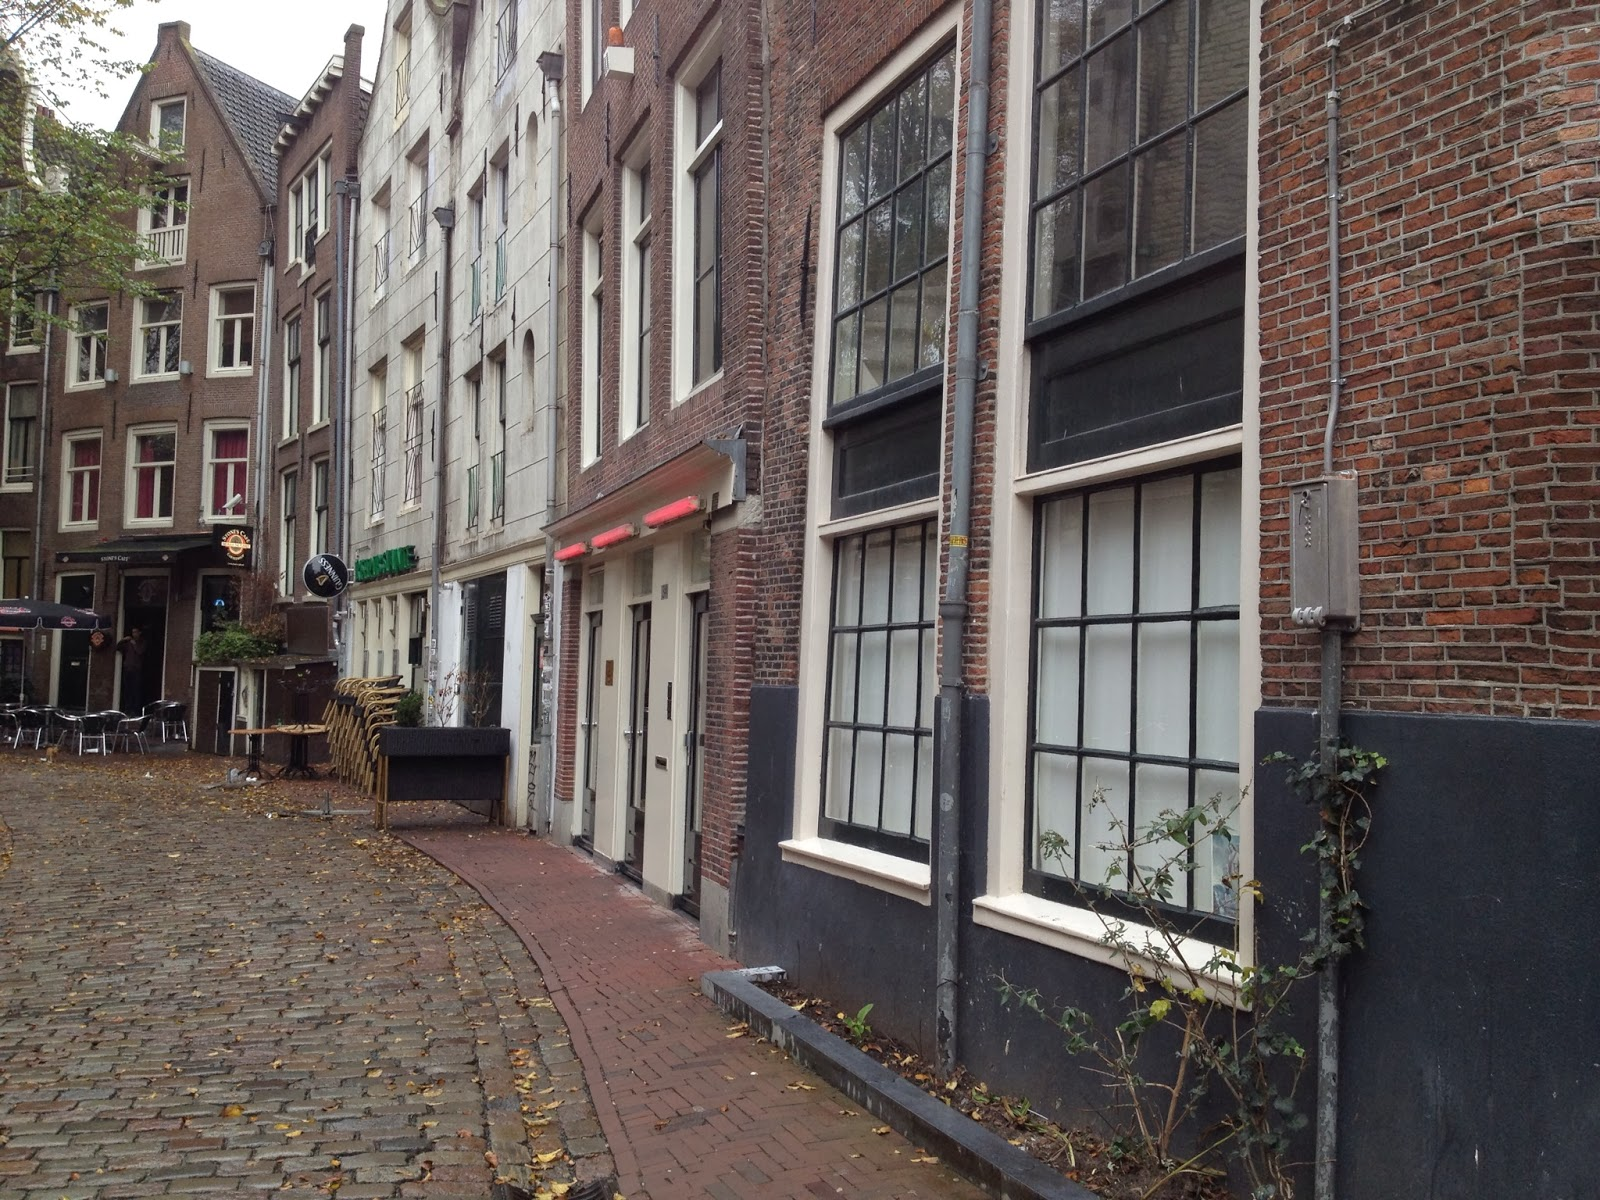 Amsterdam - Walking tour took us through the Red Light District